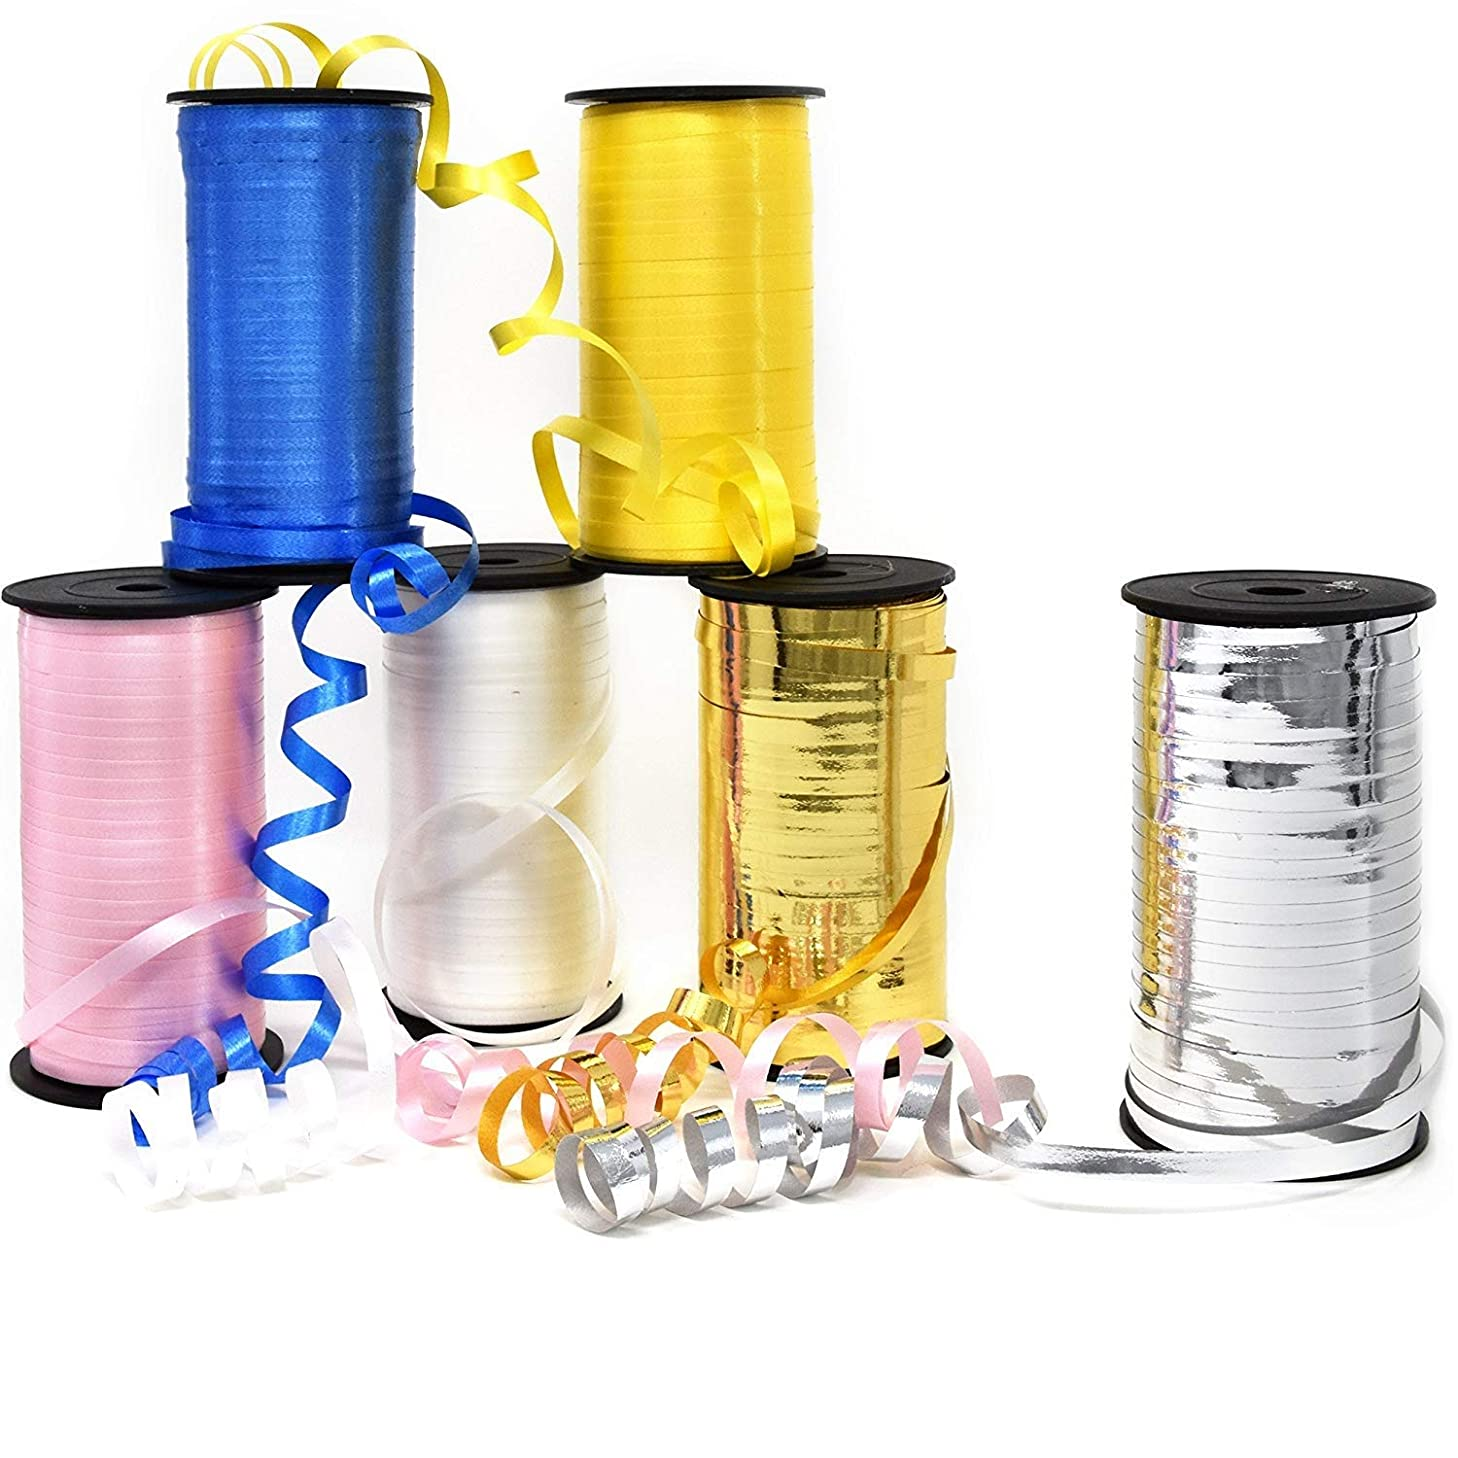 6 Curling Ribbon Rolls 600 Yards Assorted Colors Royal Blue Yellow Pink White Metallic Gold & Silver 3/16